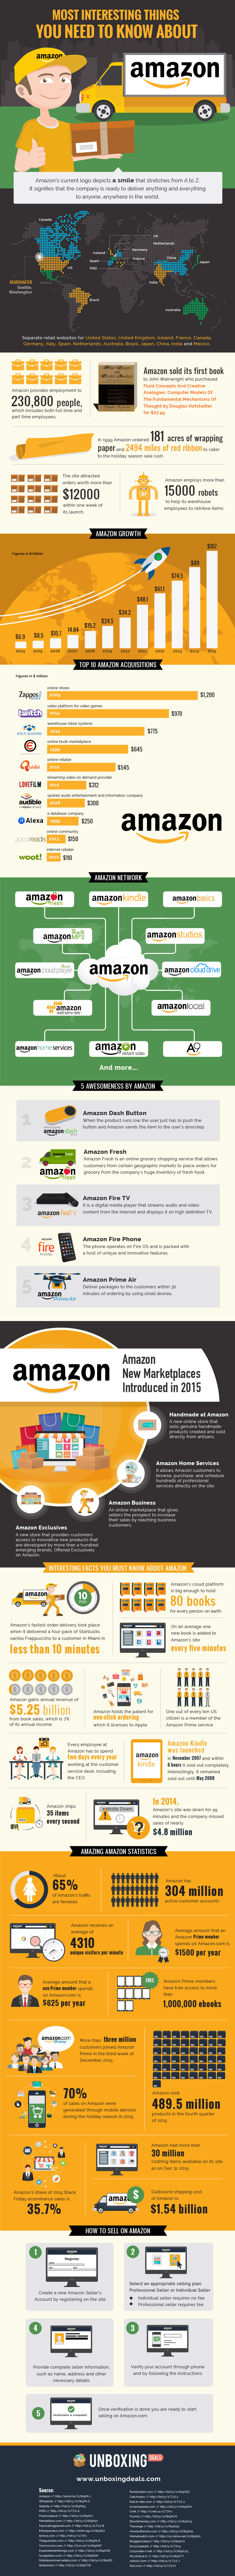 Most Intresting Things You Need To Know About AMAZON